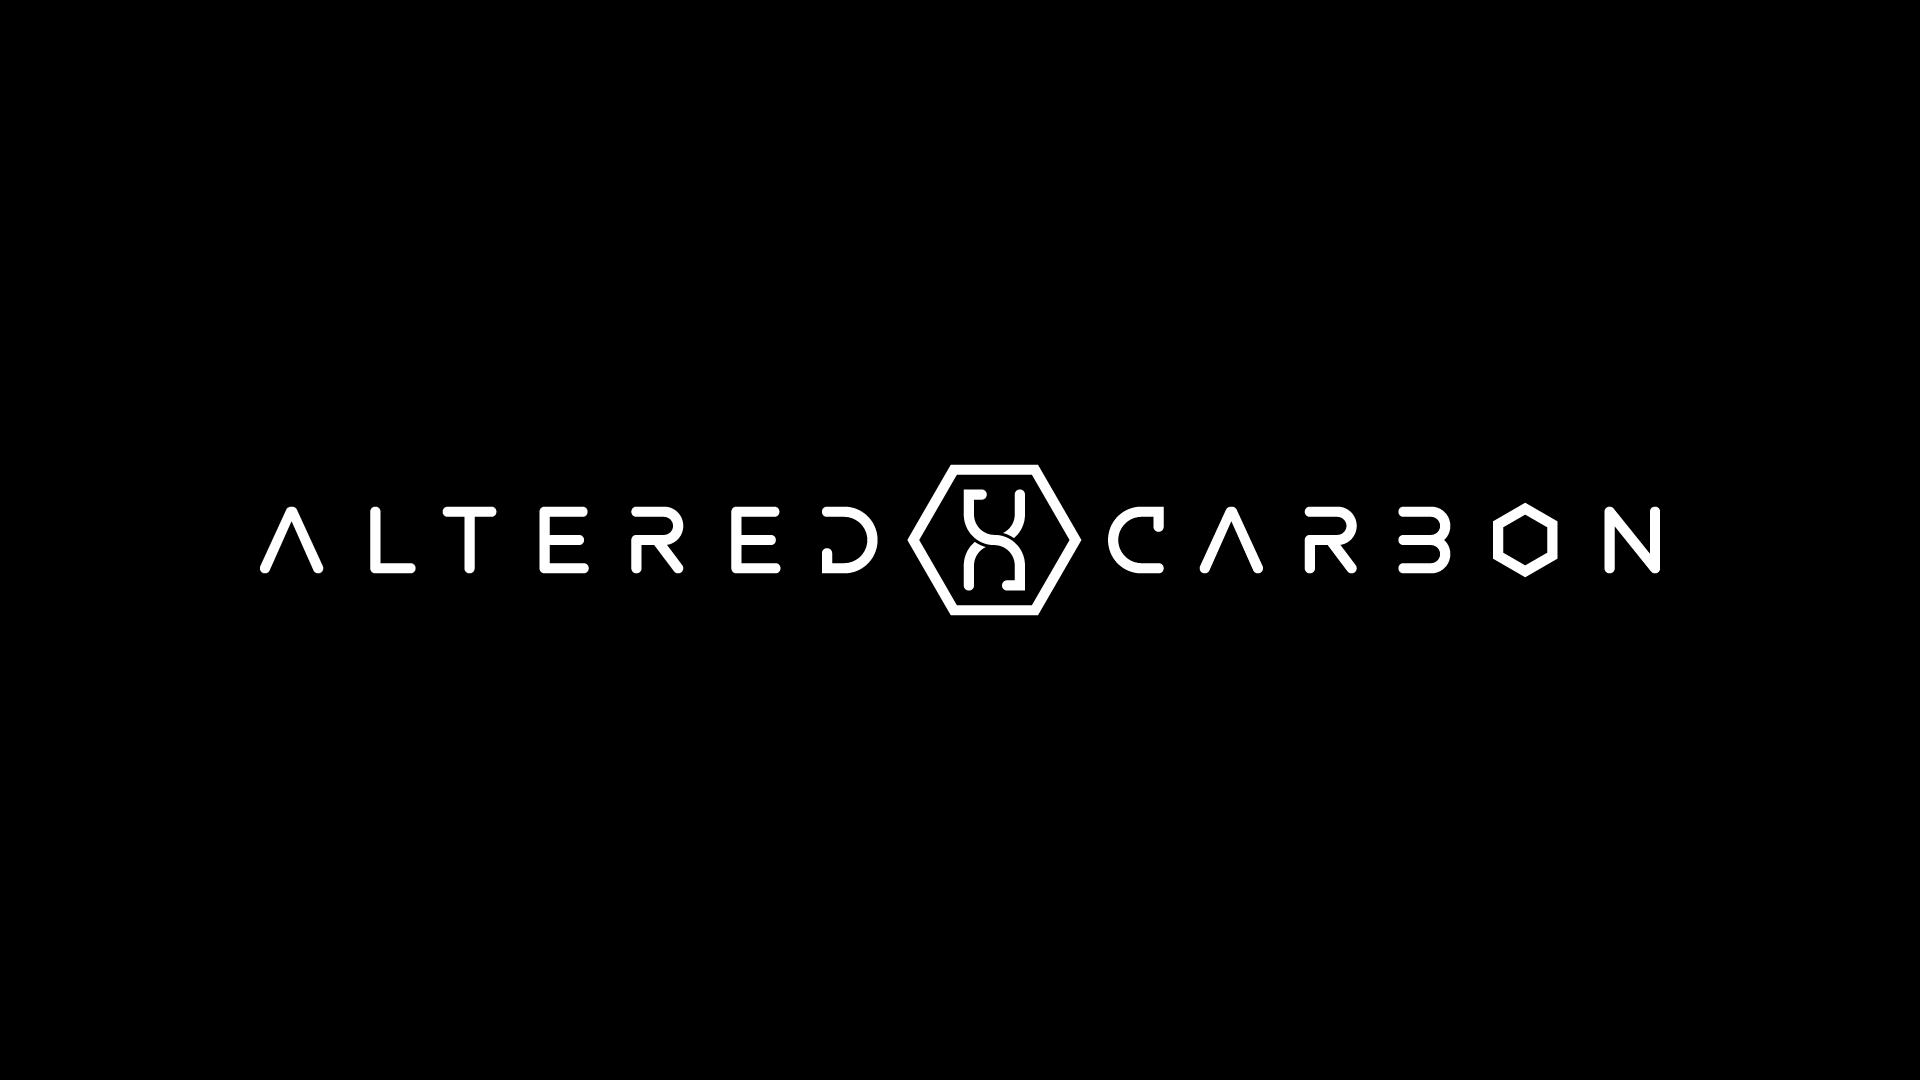 altered carbon logo, hd tv shows, 4k wallpapers, images, backgrounds